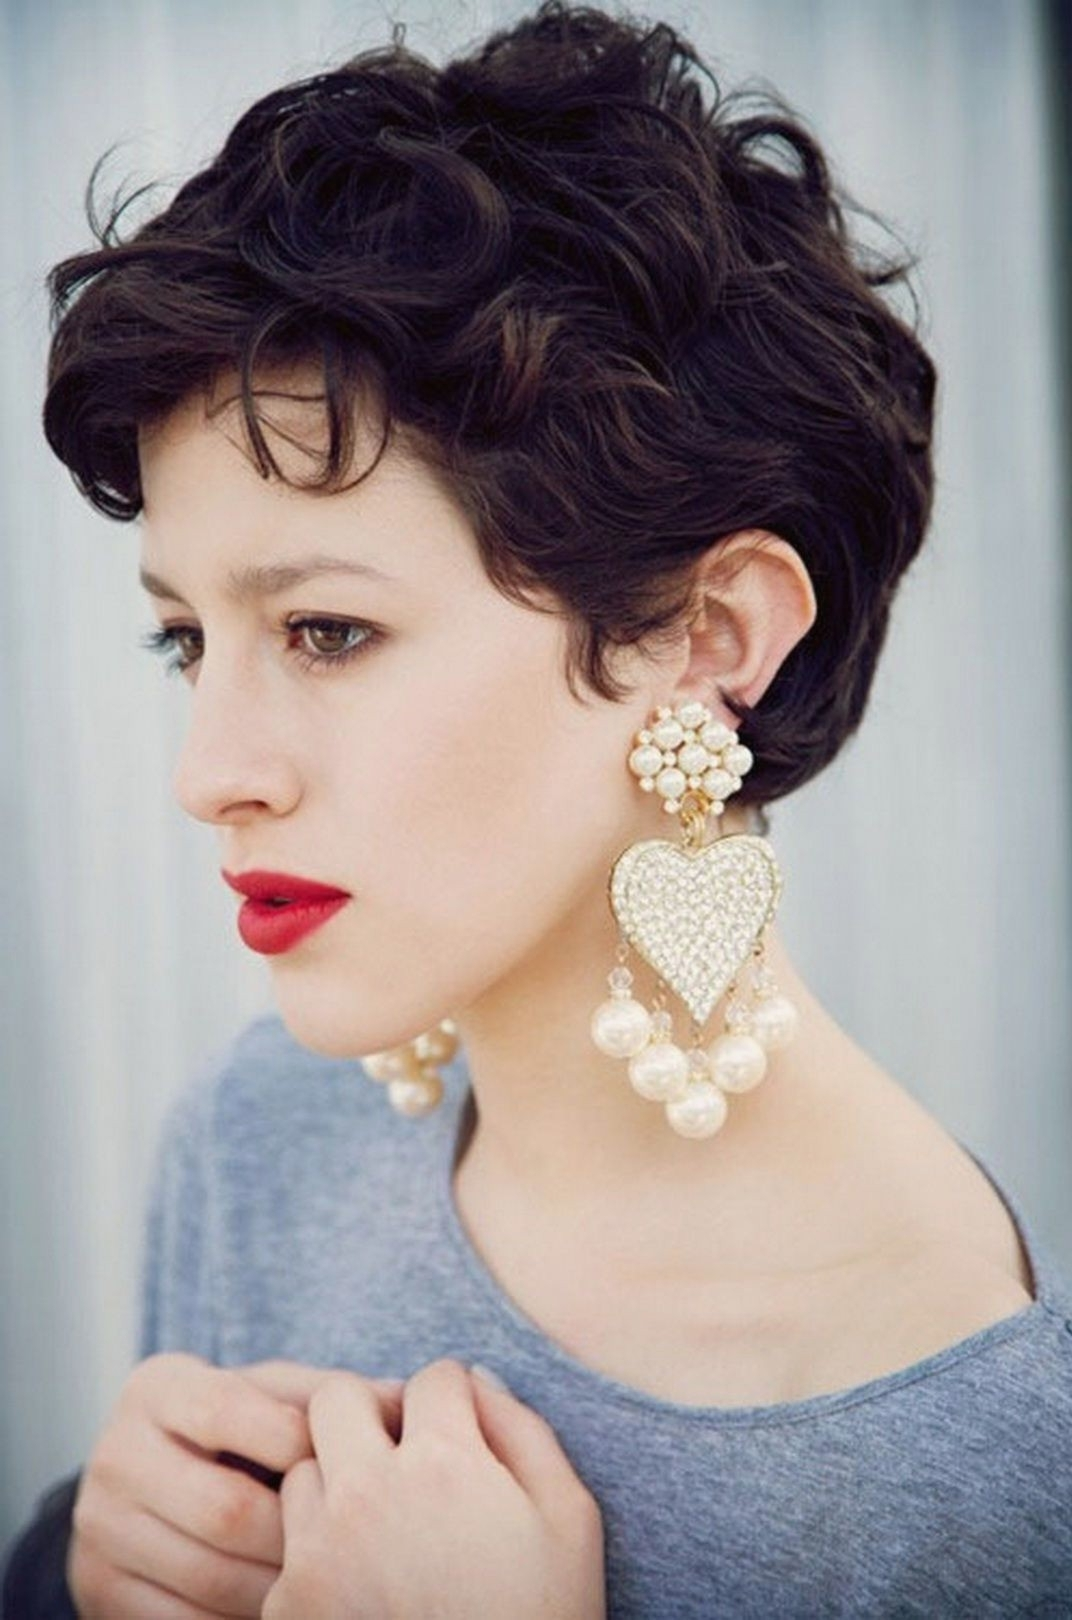 Short Hairstyles : New Short Wavy Pixie Hairstyles Collection In Intended For Latest Wavy Pixie Hairstyles (View 3 of 15)